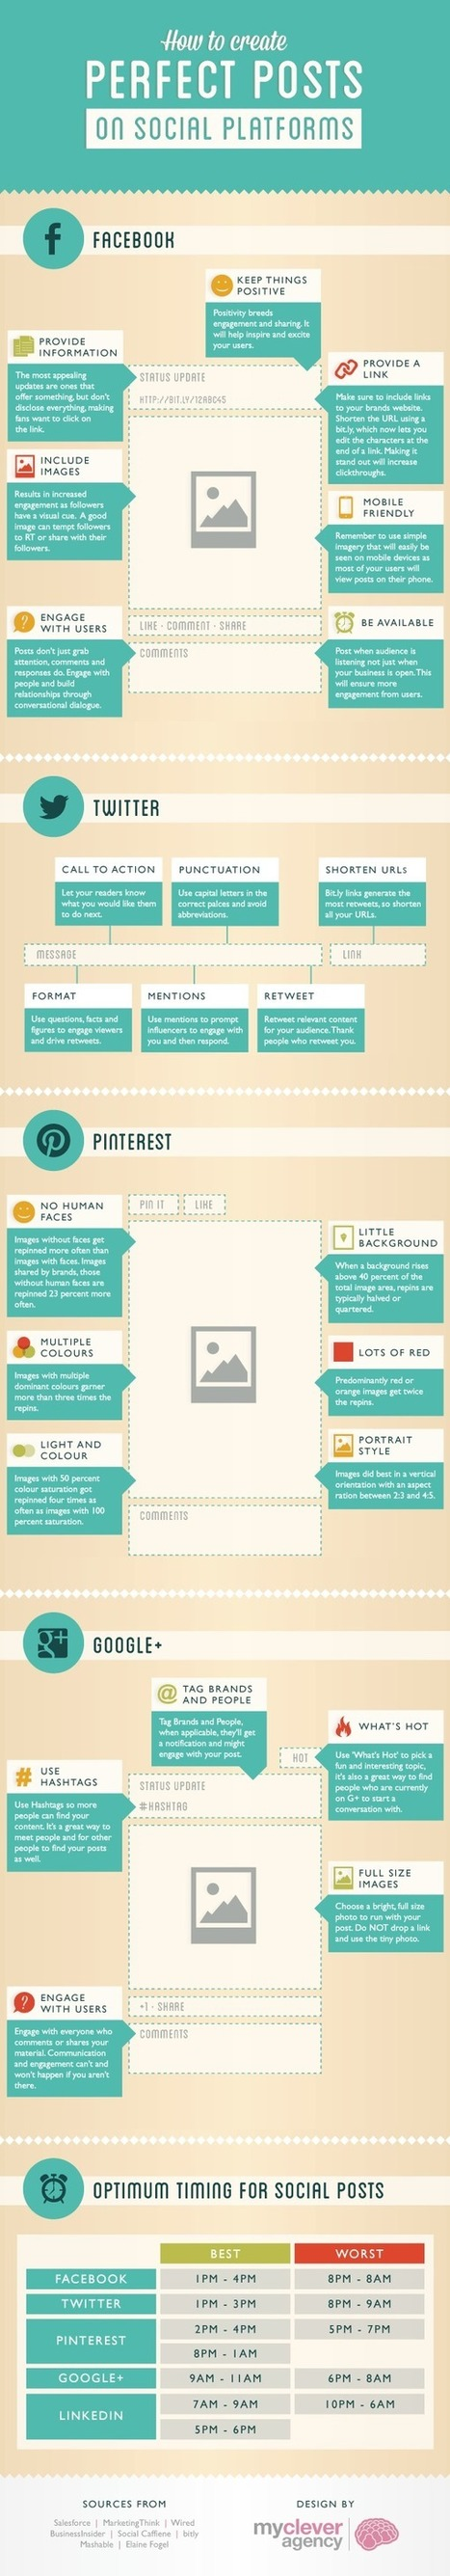 How To Create The Perfect Post on Social Platfo... | My Favorite Topics | Scoop.it